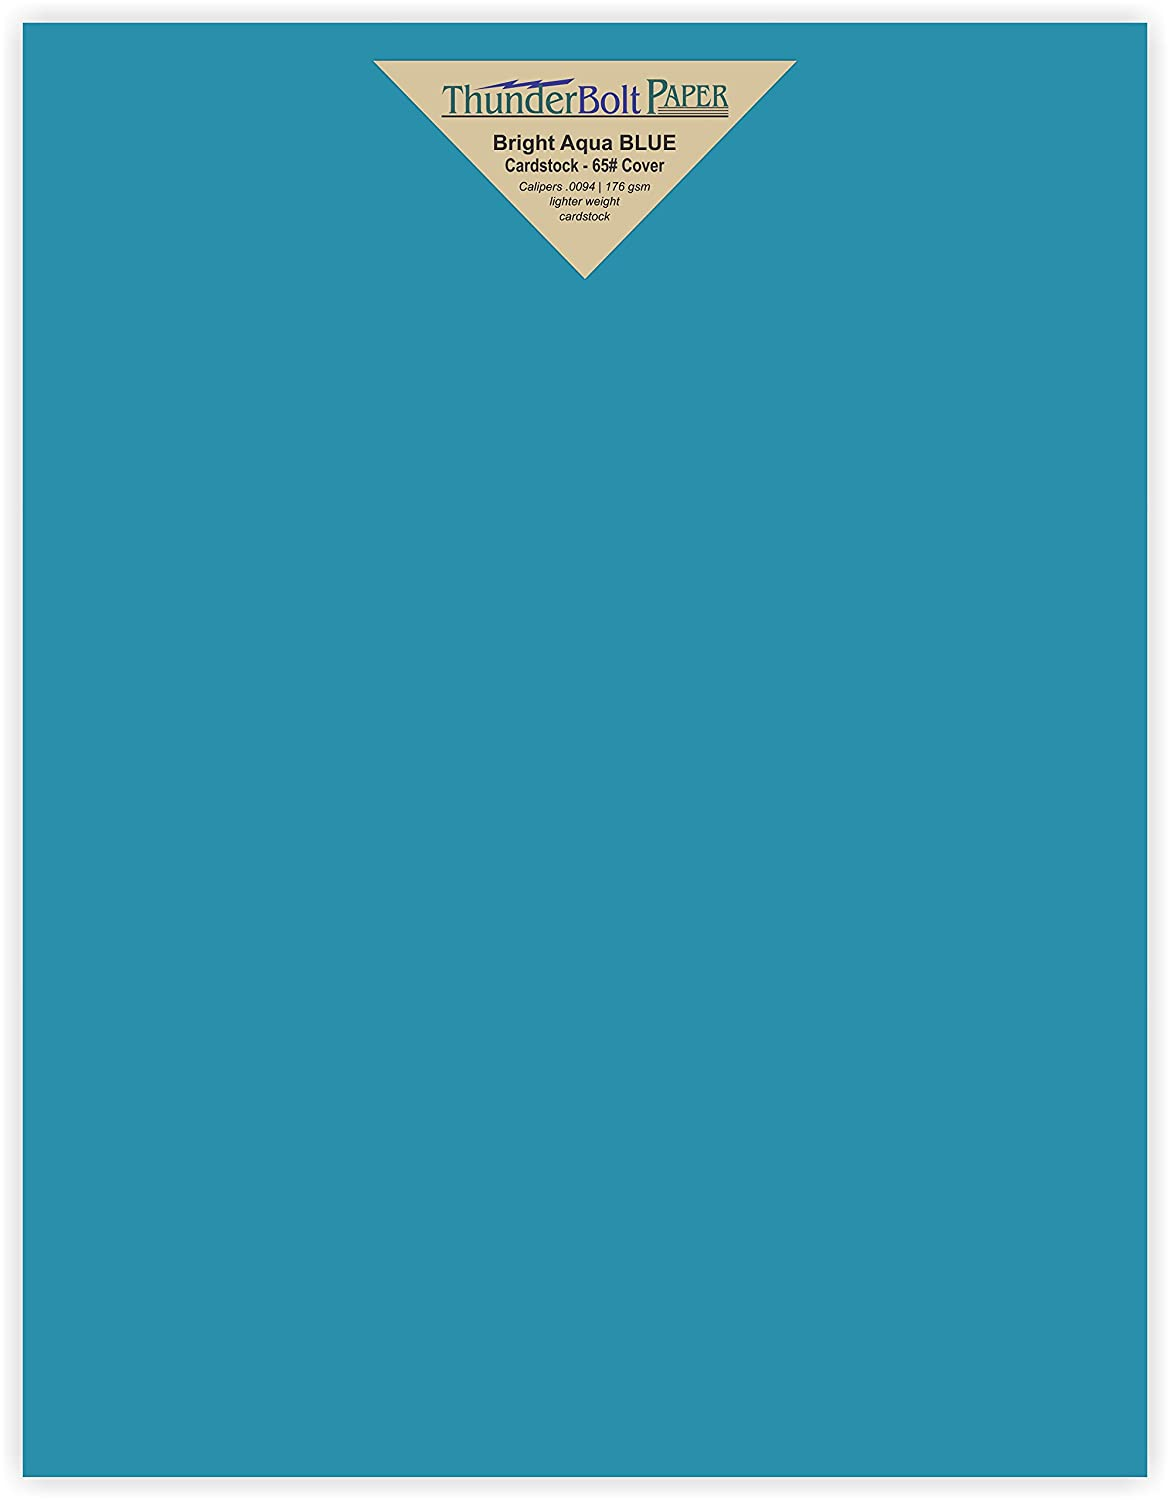 Gold color cardstock paper 5x7 - Amazon Com 50 Bright Aqua Blue Cardstock 65lb Cover Paper 9 X 12 Inches Frame And Sketch Pad Size 65 Lb Pound Light Weight Cardstock Quality Smooth